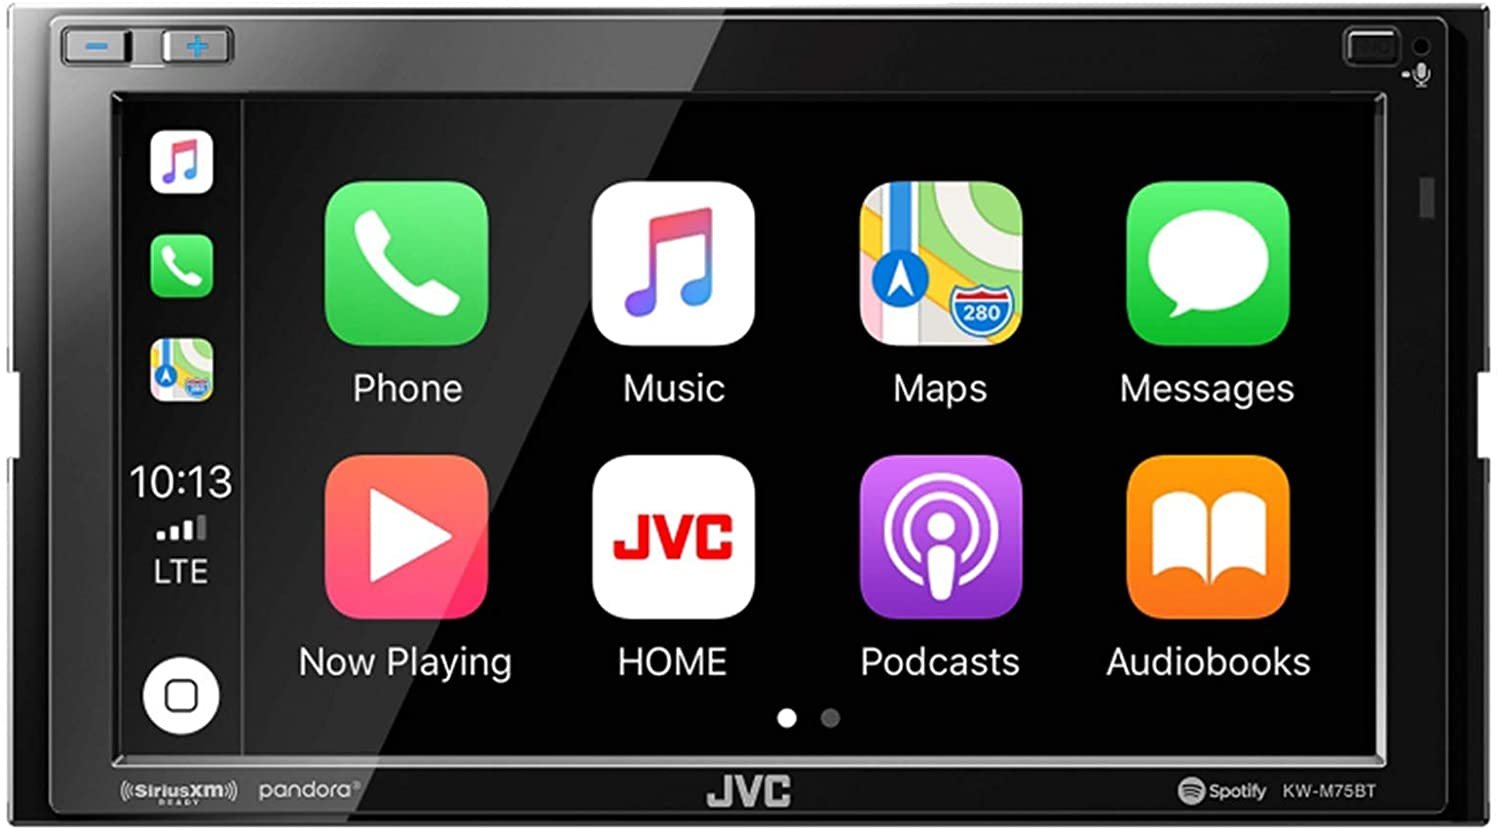 Bluetooth Double Din Car Stereo JVC KWM750BT Compatible with Apple Carplay Android Auto Car Multimedia Player 6.8 Inch LCD Touchscreen Monitor